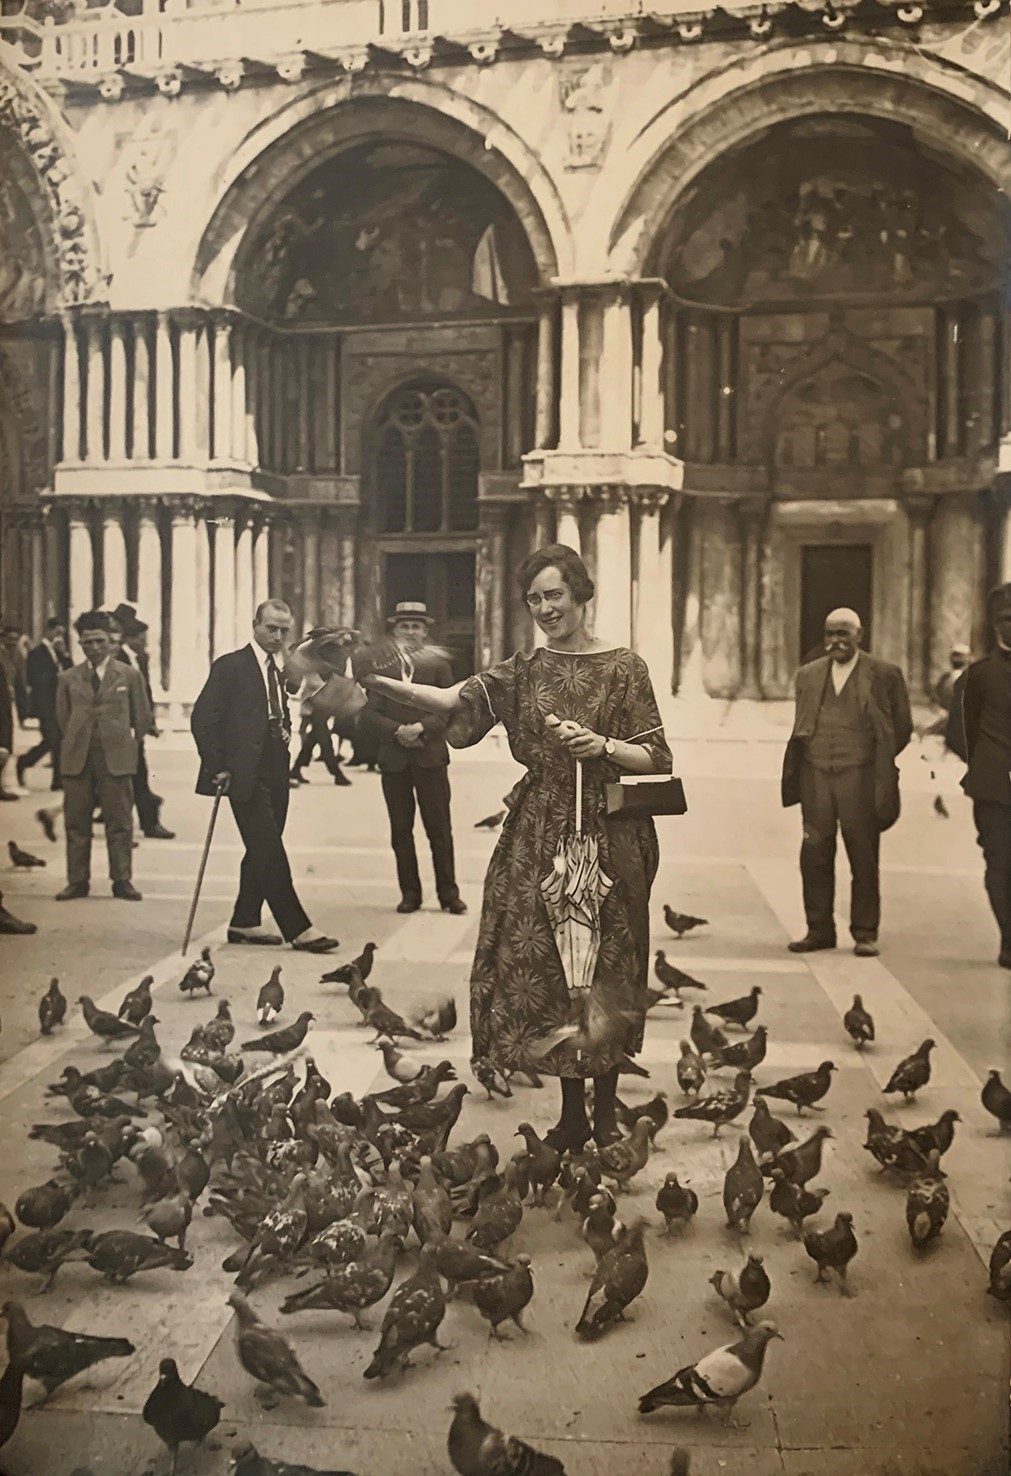 Ellen Börtz on Piazza San Marco in Venice, Italy, 1922. Photographer unknown, privately owned image